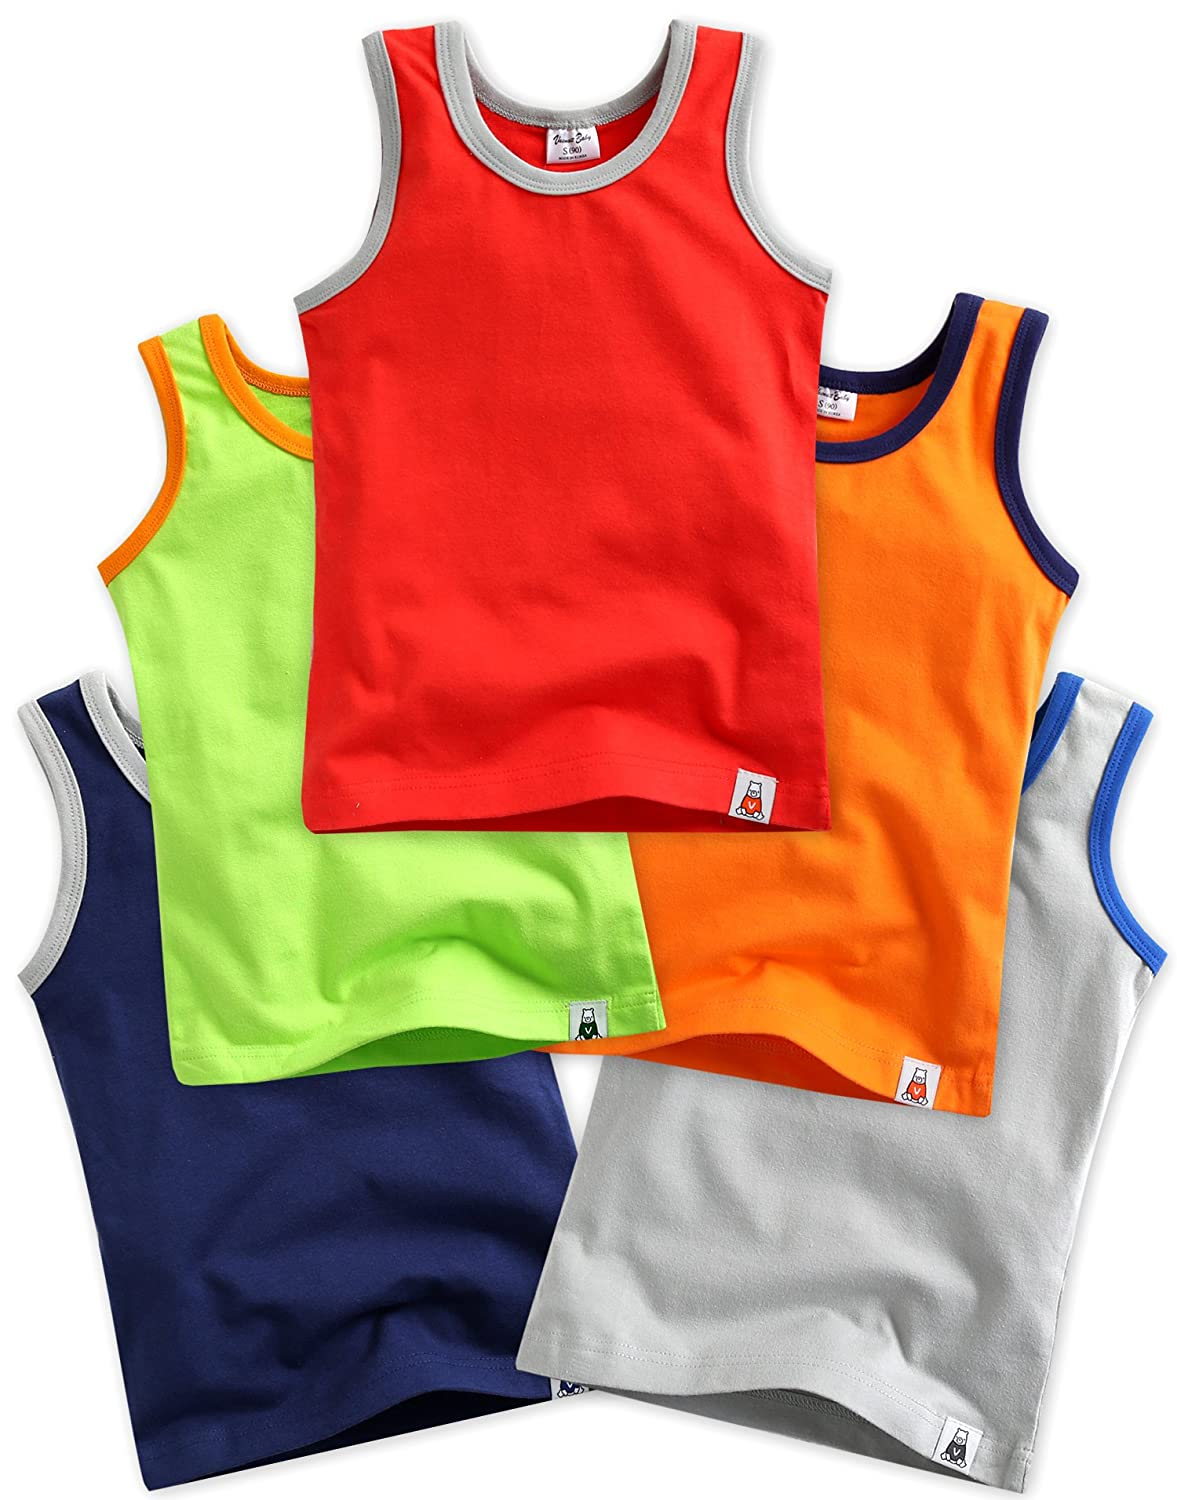 5 Pack Undershirts Days Red / Green / Orange / Navy / Grey M BB_088-2